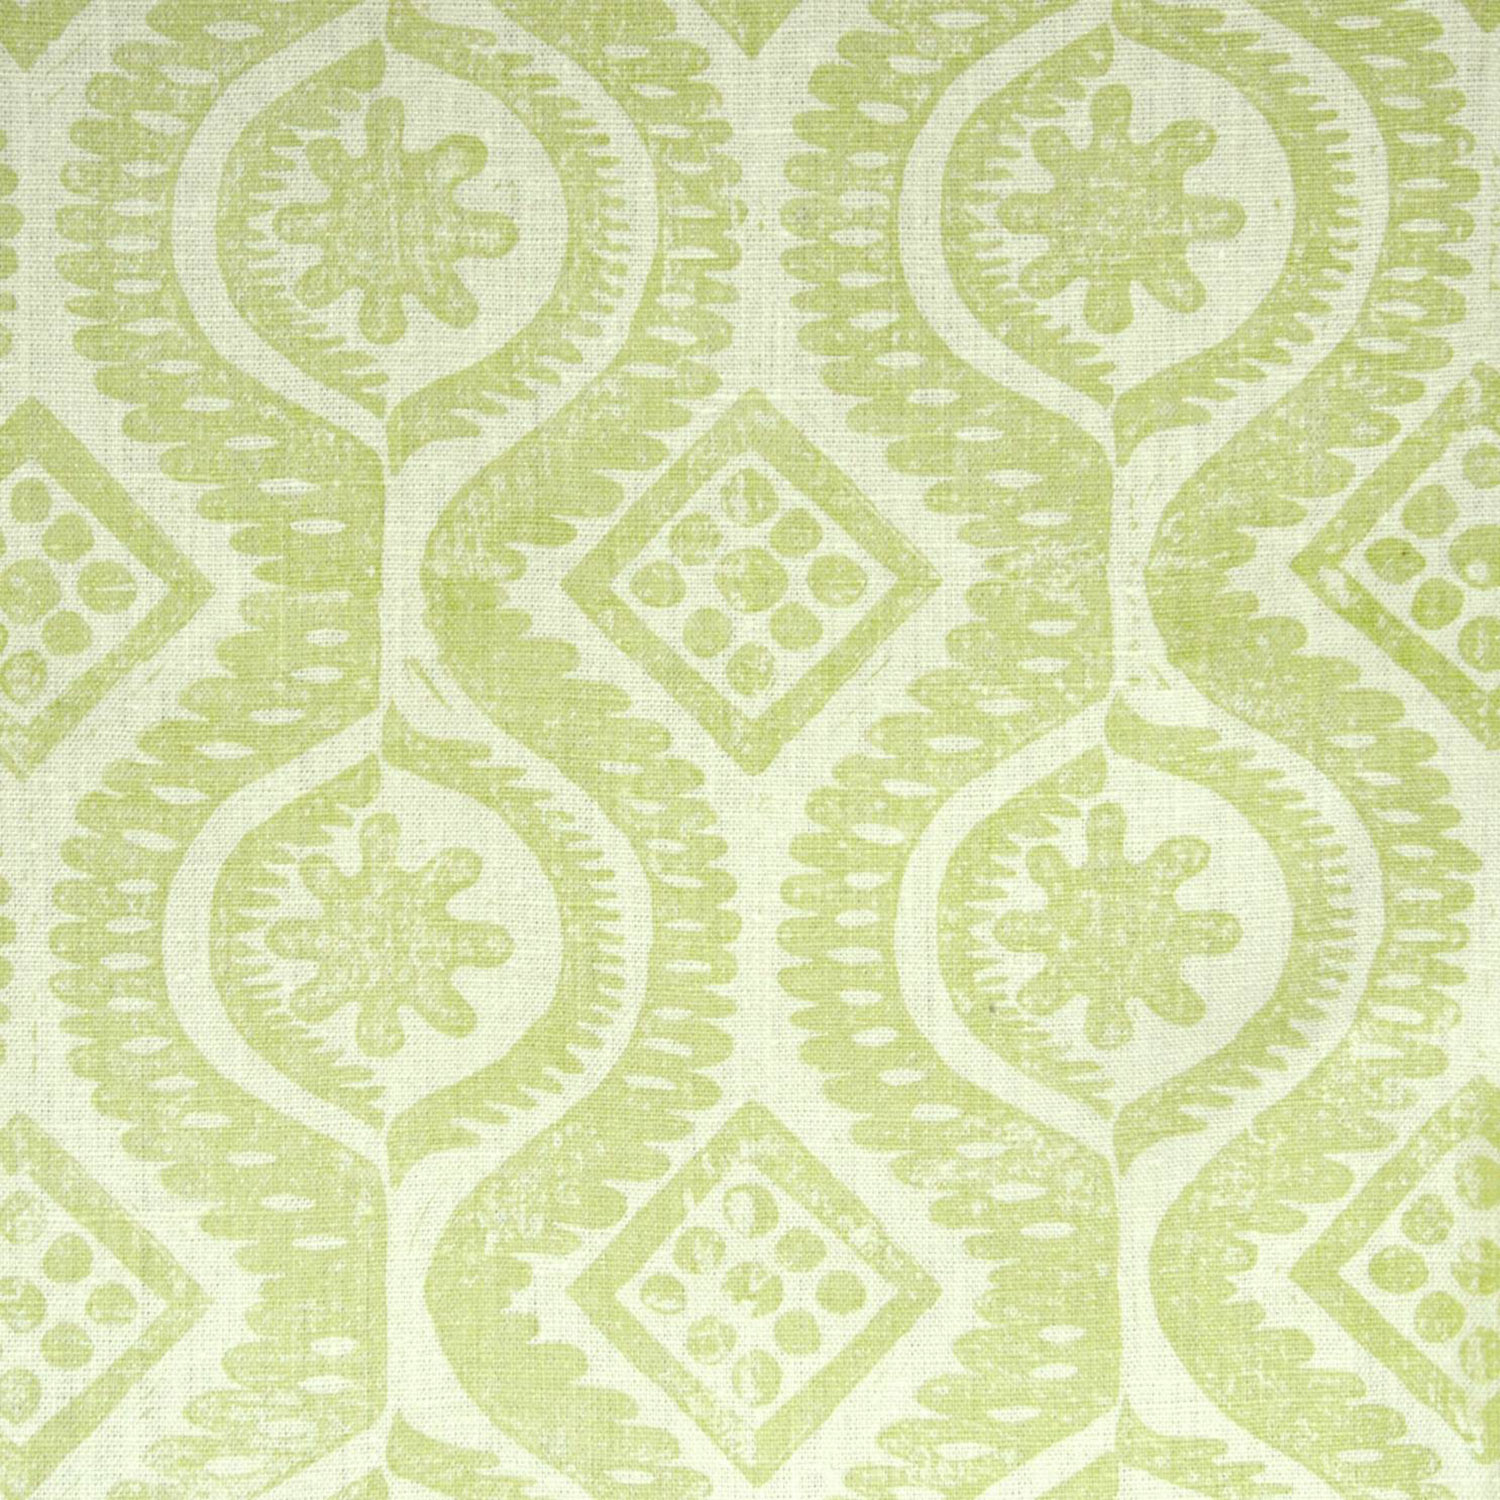 <p><strong>DAMASK</strong>lime 6500-06<a href=/the-peggy-angus-collection/damask-lime-6500-06>More →</a></p>